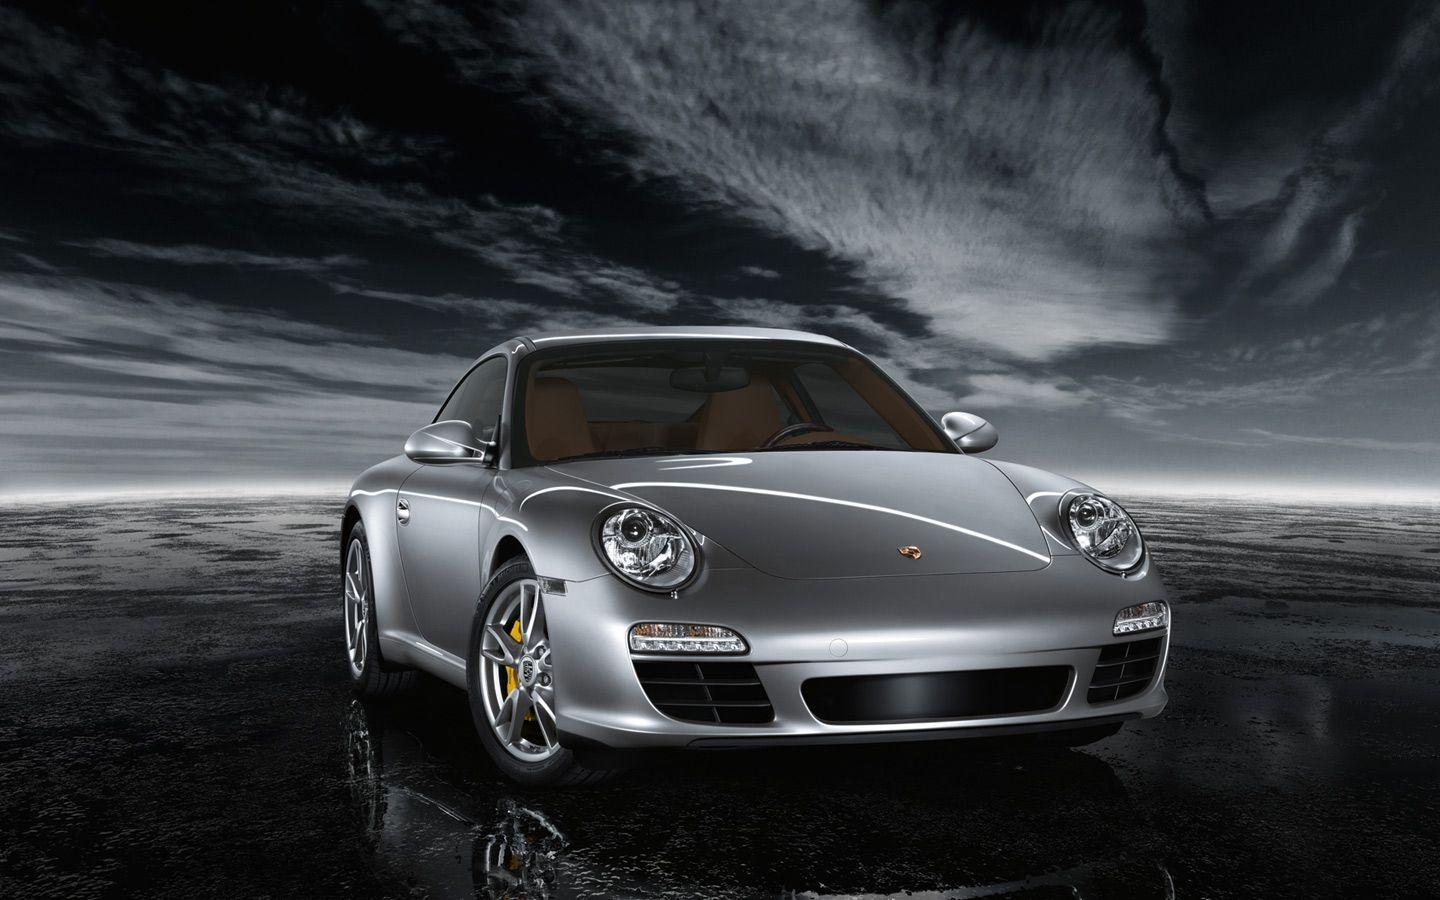 Porsche 911 Carrera 2008 wallpaper